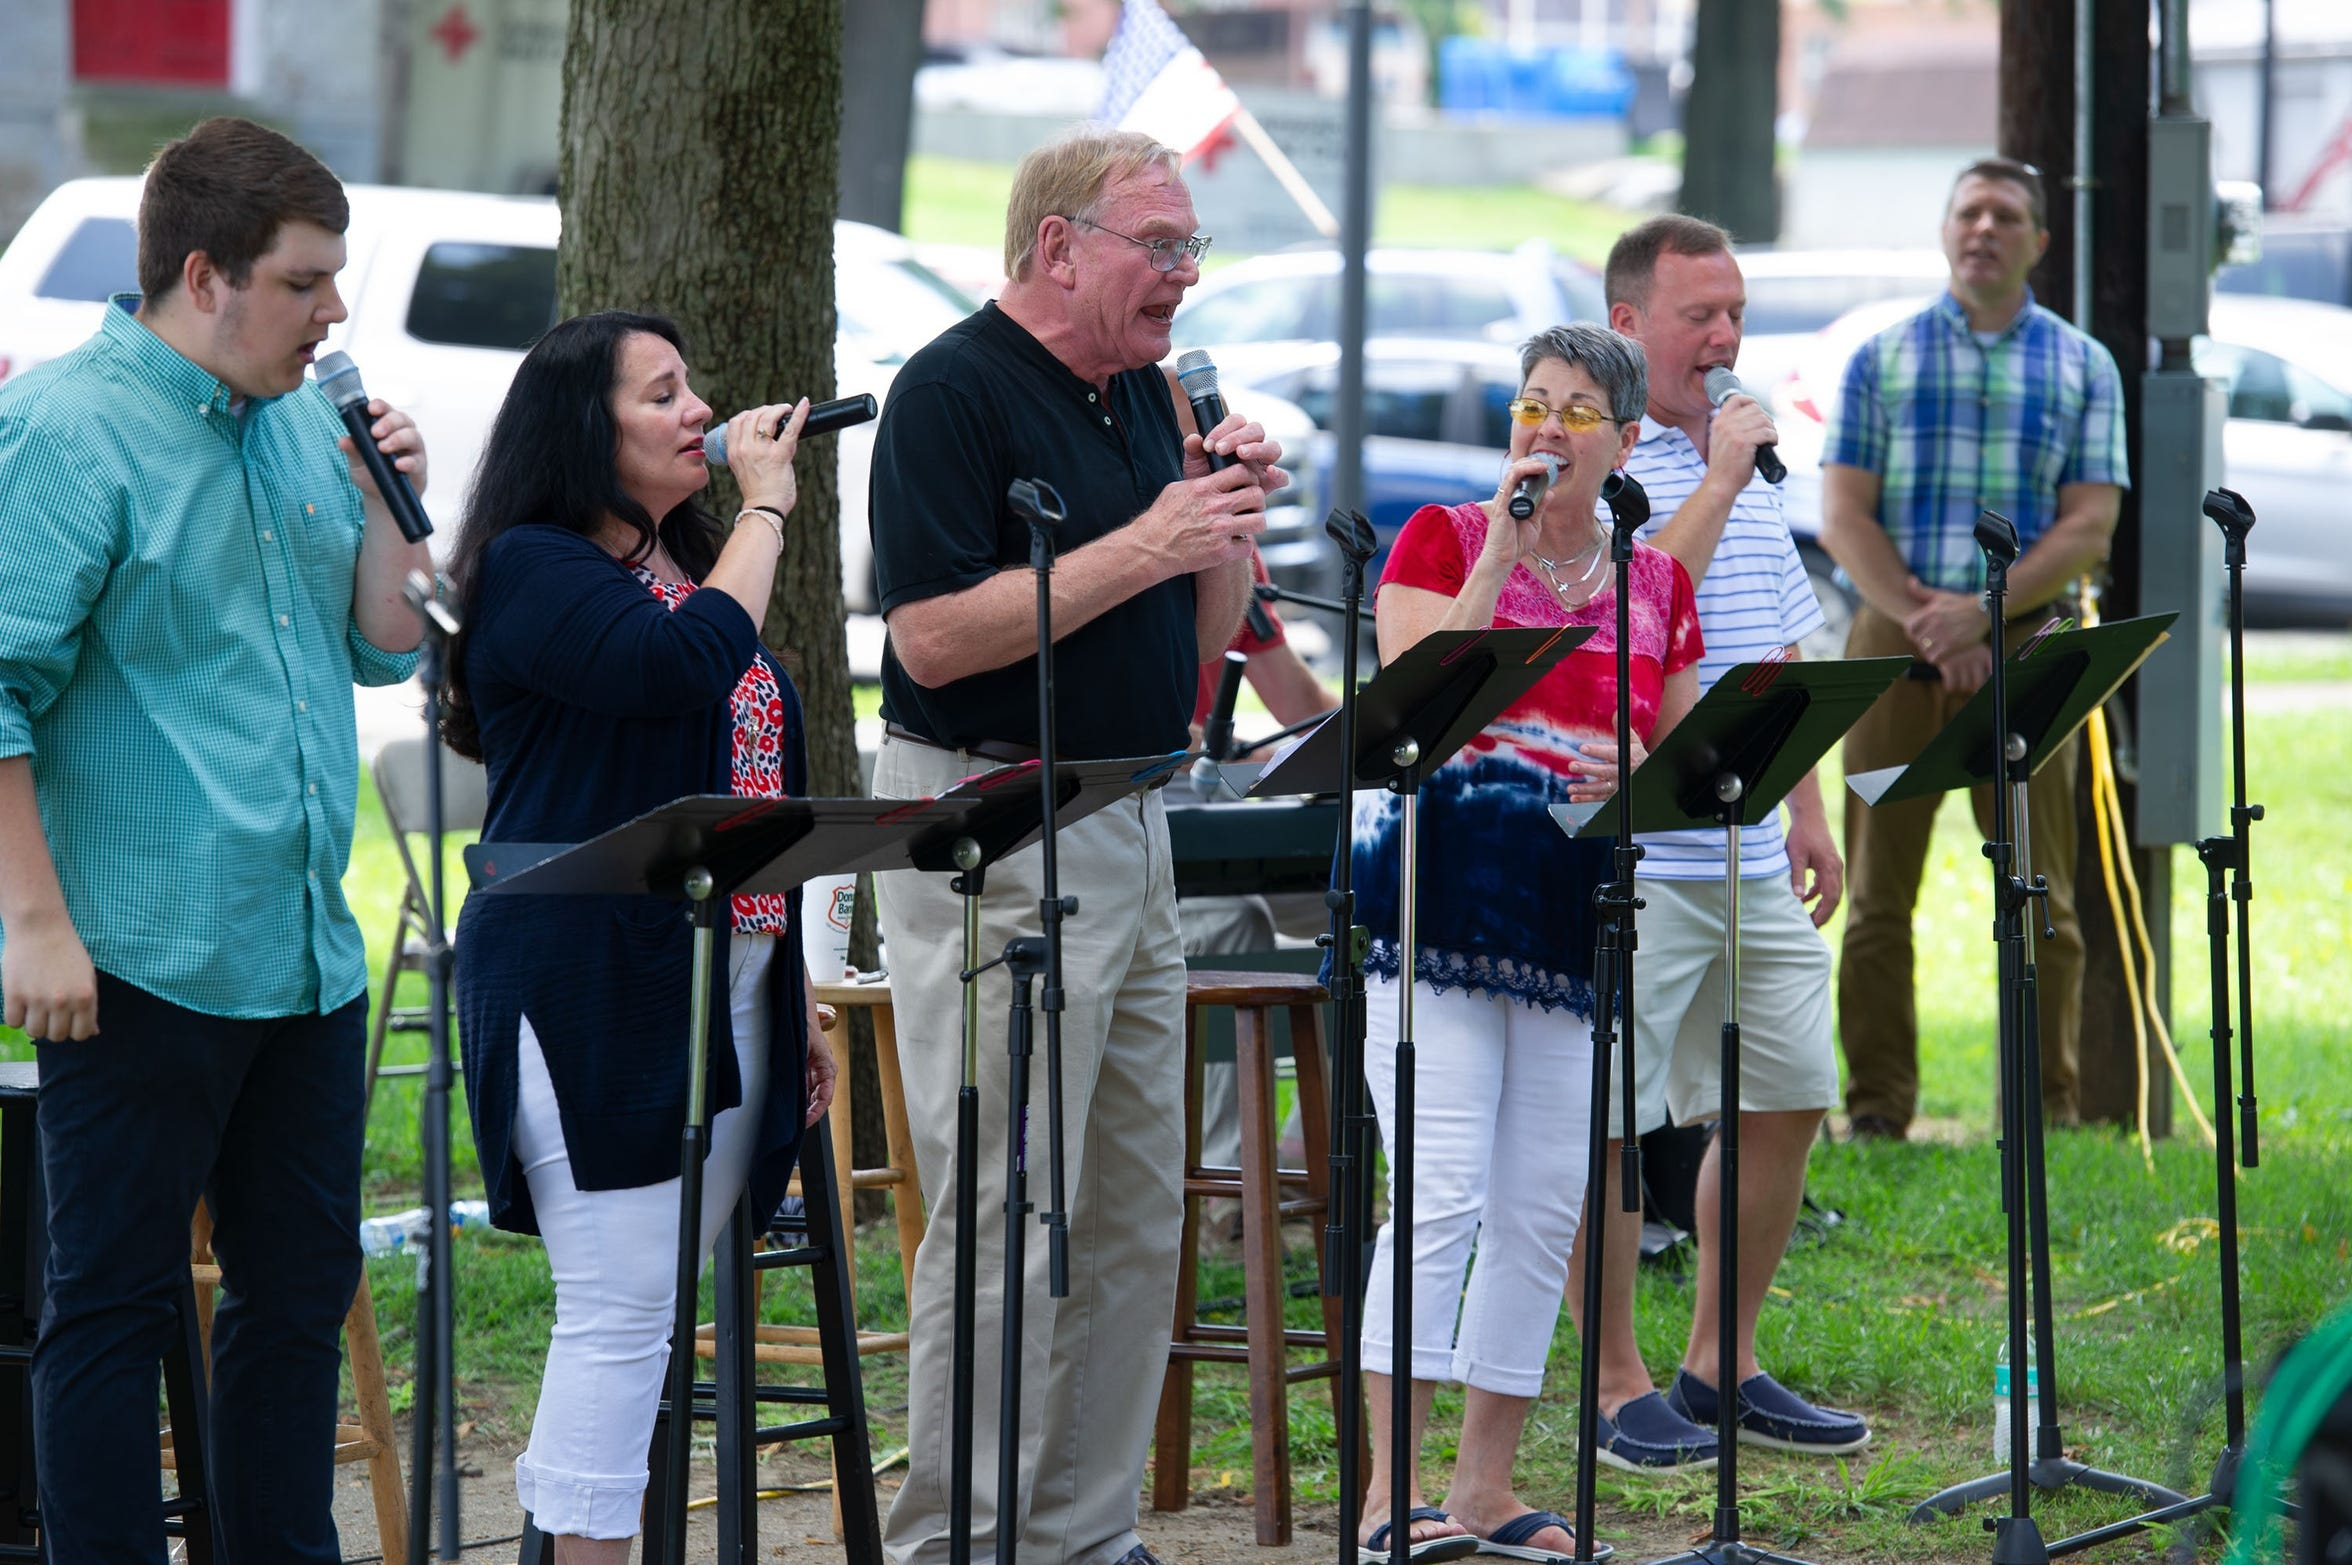 Alan Chamness, center, leads the congregation in signing during First Baptist Church's worship service in Central Park during Memorial Day weekend in May 2018, along with singers (from left), Clay Whitmore, Deanna Meeks, Chamness, Linda Todd-Ferguson and Ben Patterson. Also shown is executive pastor Rich Stratton.